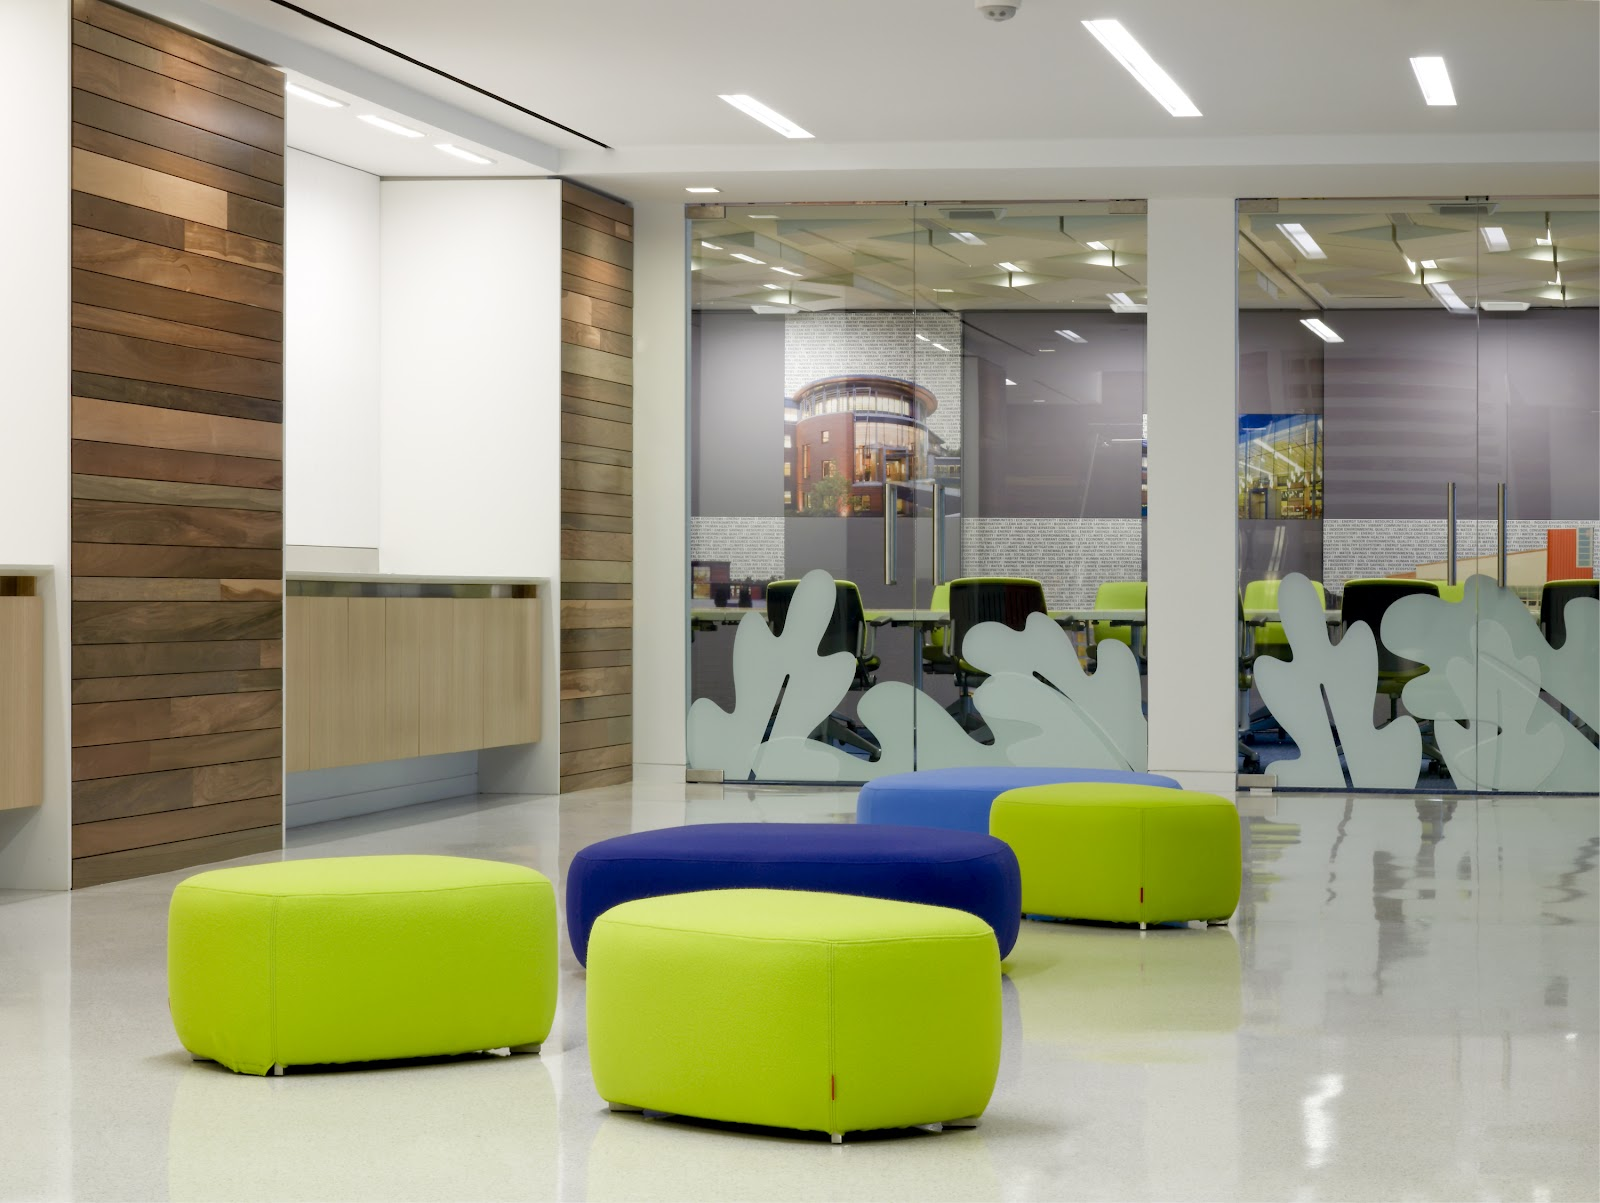 USGBC Blog: Healthy, S... Sustainable Interior Design